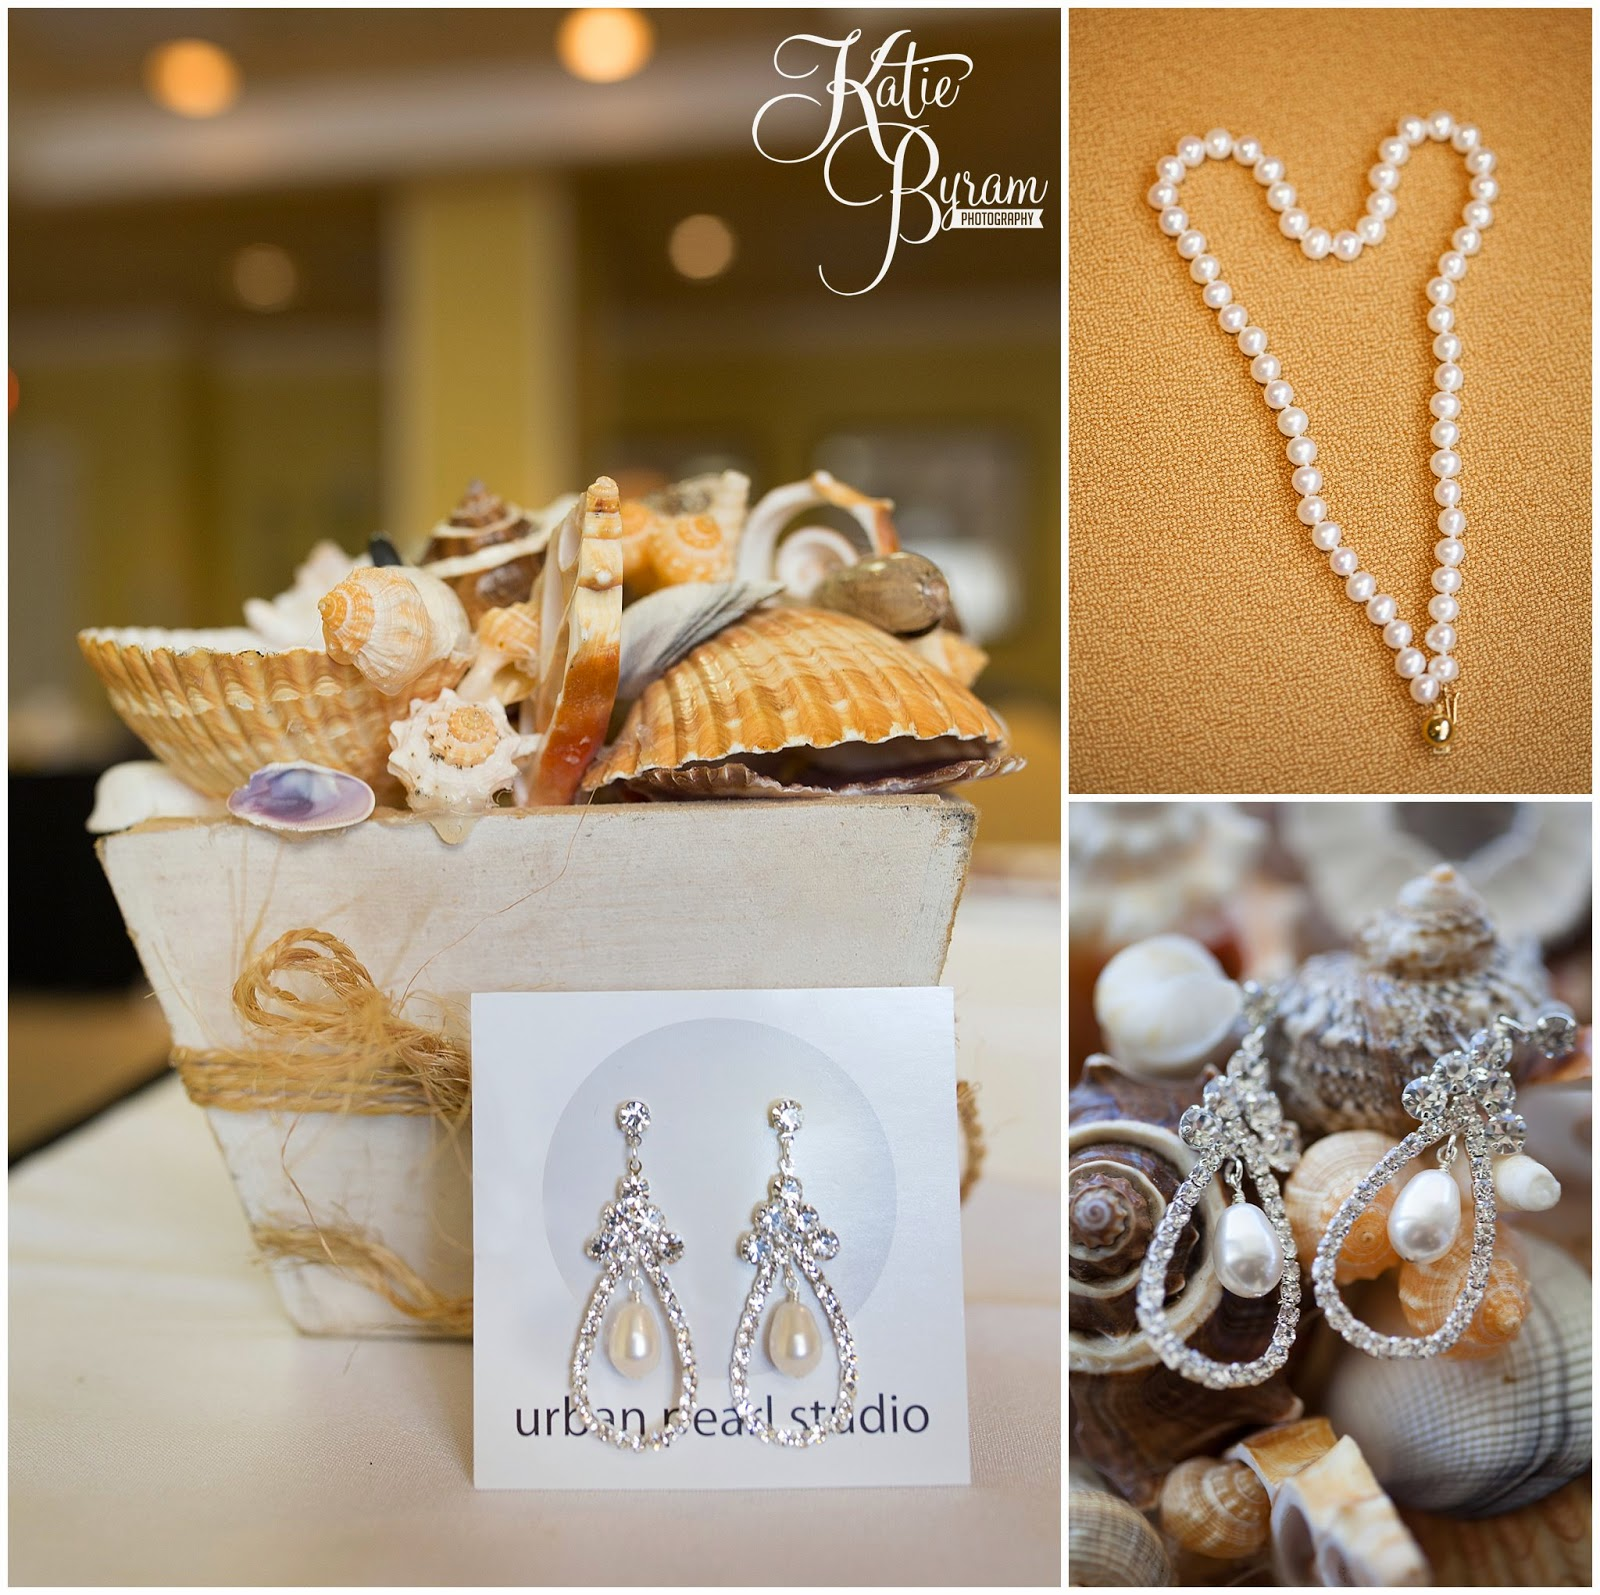 beach themed wedding, beach wedding jewellery, destination wedding, clearwater beach wedding, hilton clearwater beach wedding, katie byram photography, florida wedding